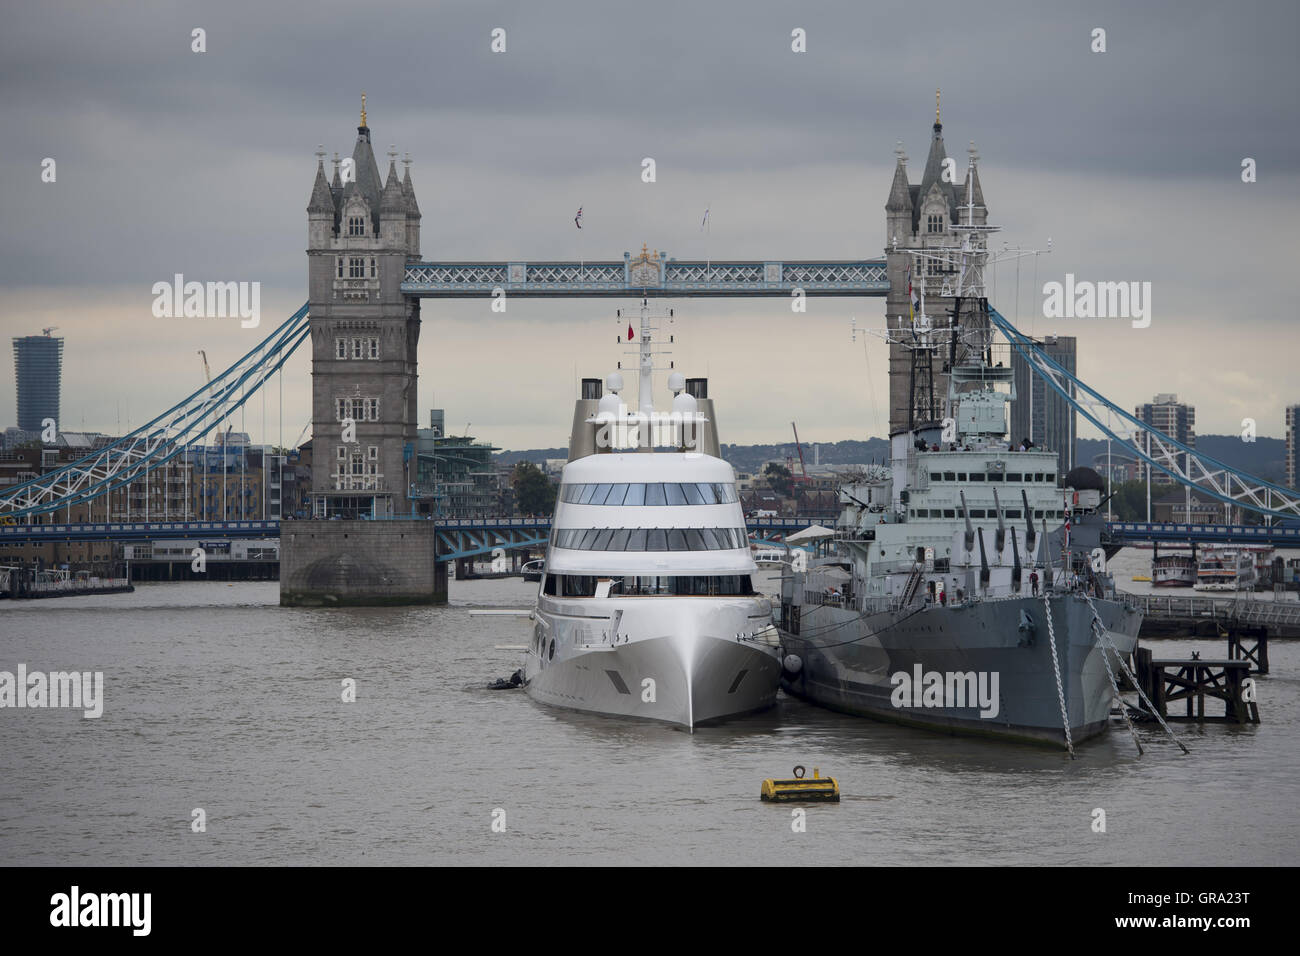 A 390ft motor yacht belonging to Russian tycoon Andrey Melnichenko, alongside HMS Belfast (right) on the River Thames - Stock Image